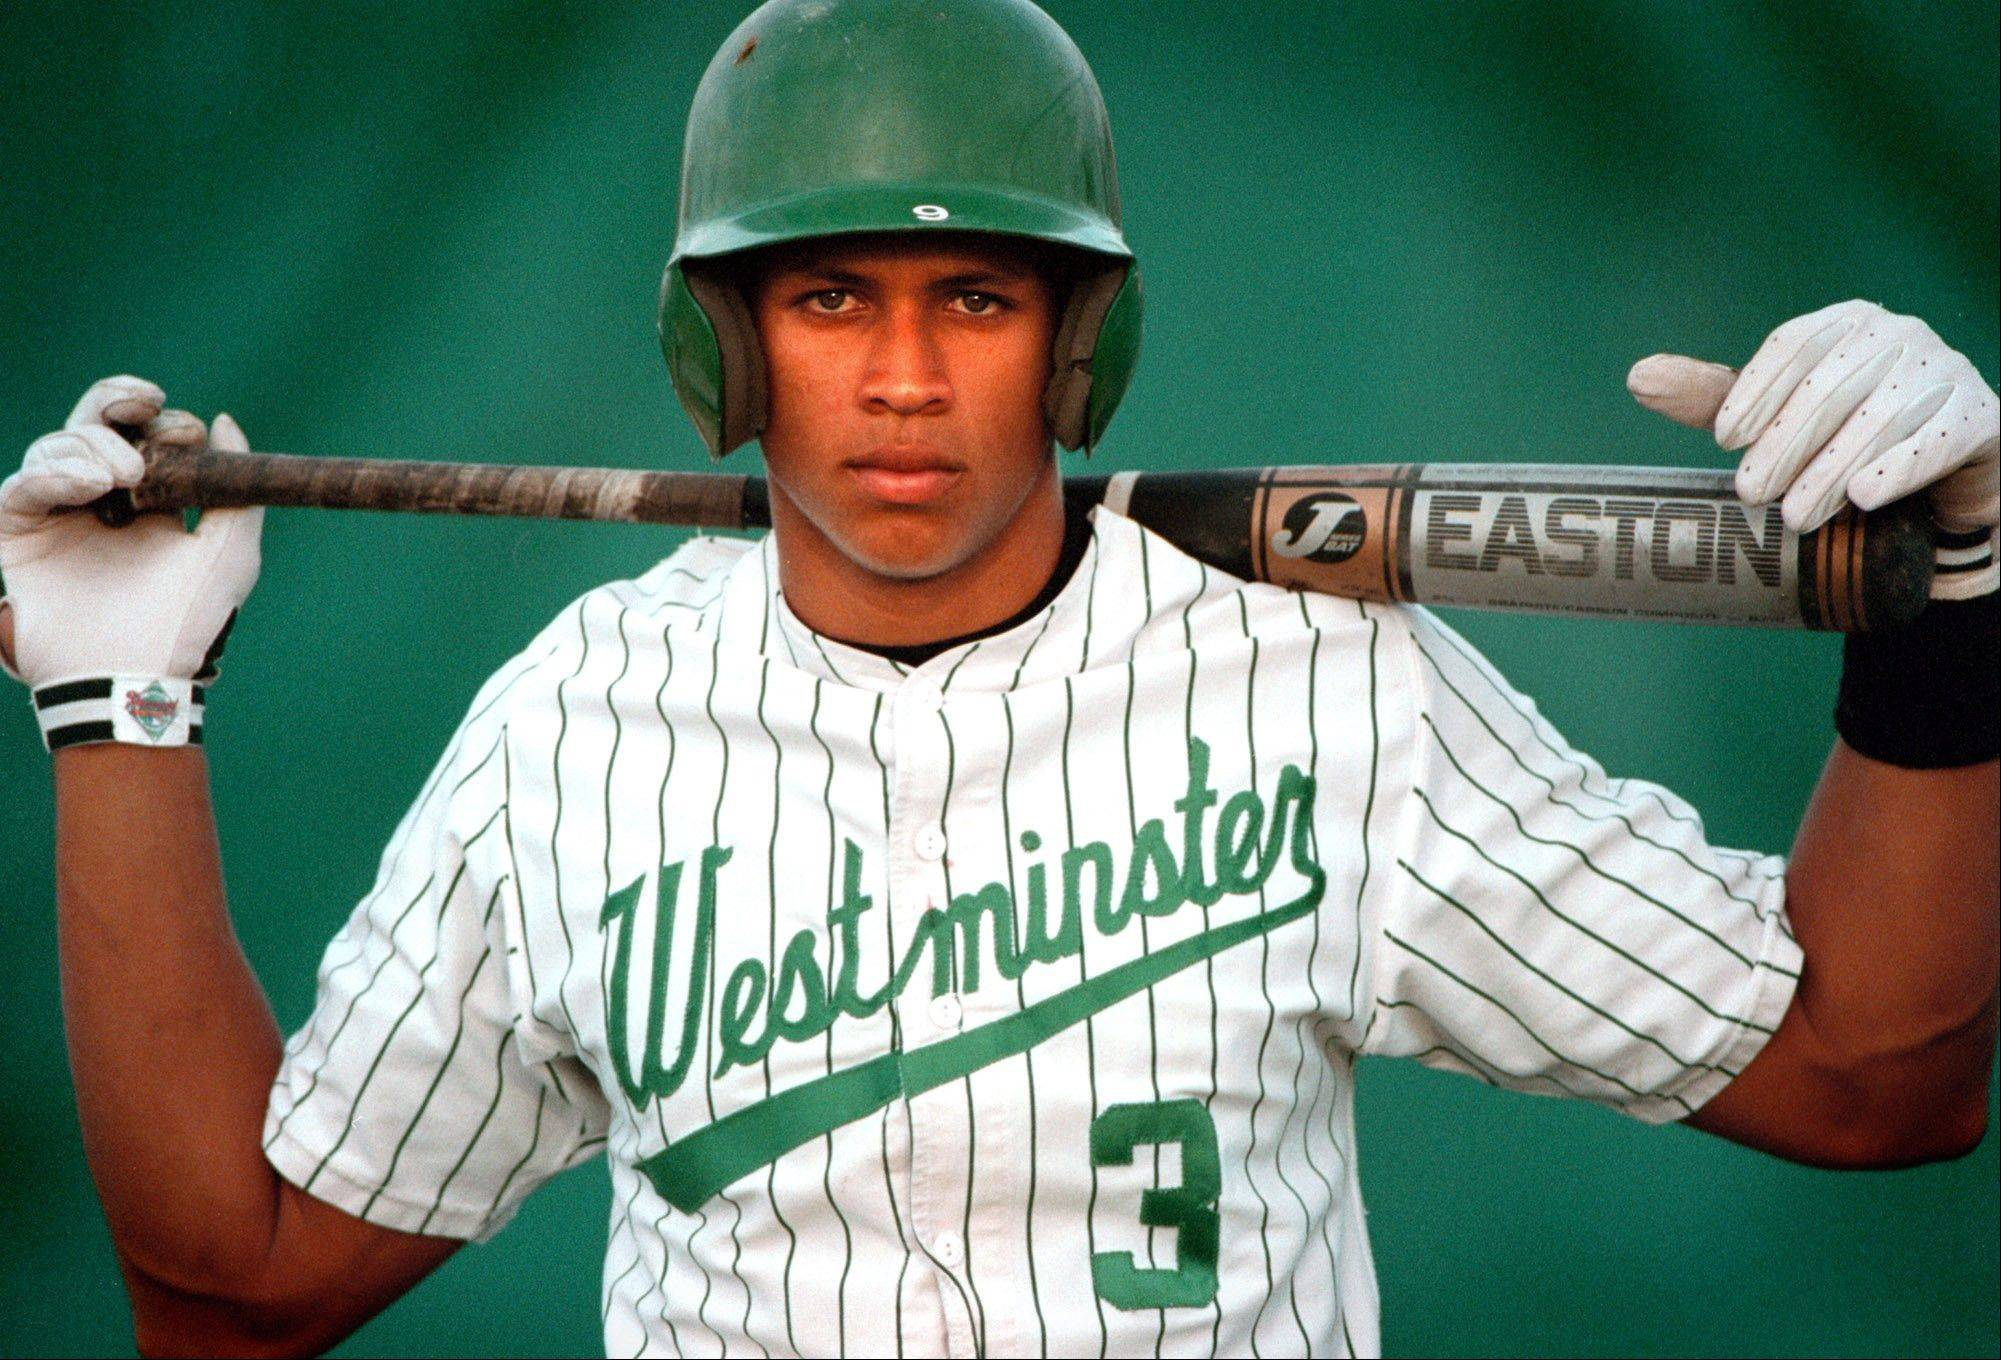 FILE- This 1990s file photo shows baseball player Alex Rodriguez when he played for Westminster Christian high school in Miami. Three MVP awards, 14 All-Star selections, two record-setting contracts and countless controversies later, A-Rod is the biggest and wealthiest target of an investigation into performance-enhancing drugs, with a decision from baseball Commissioner Bud Selig expected on Monday, Aug. 5, 2013.